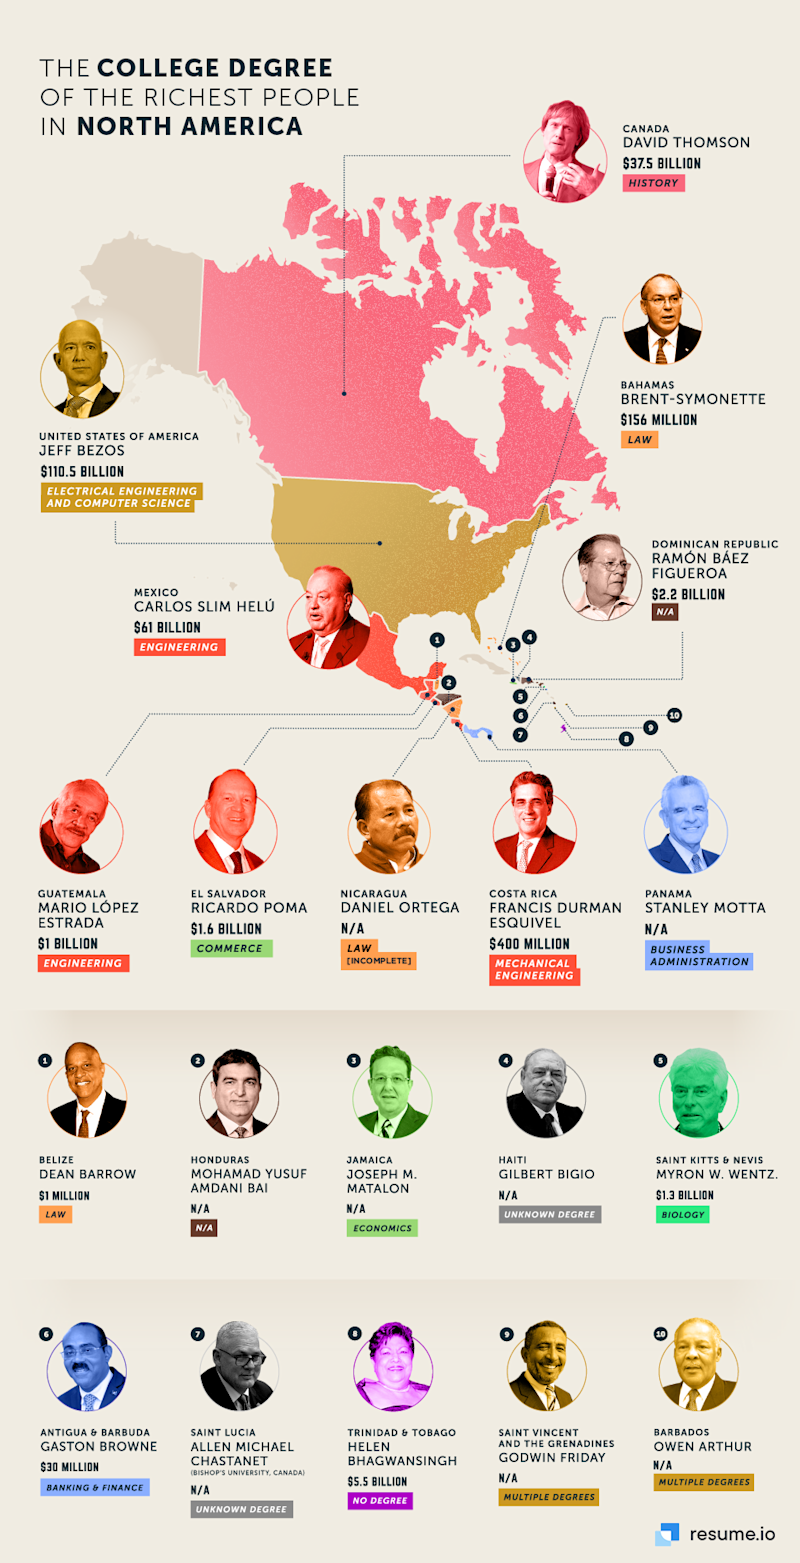 University degree of North America's richest people.